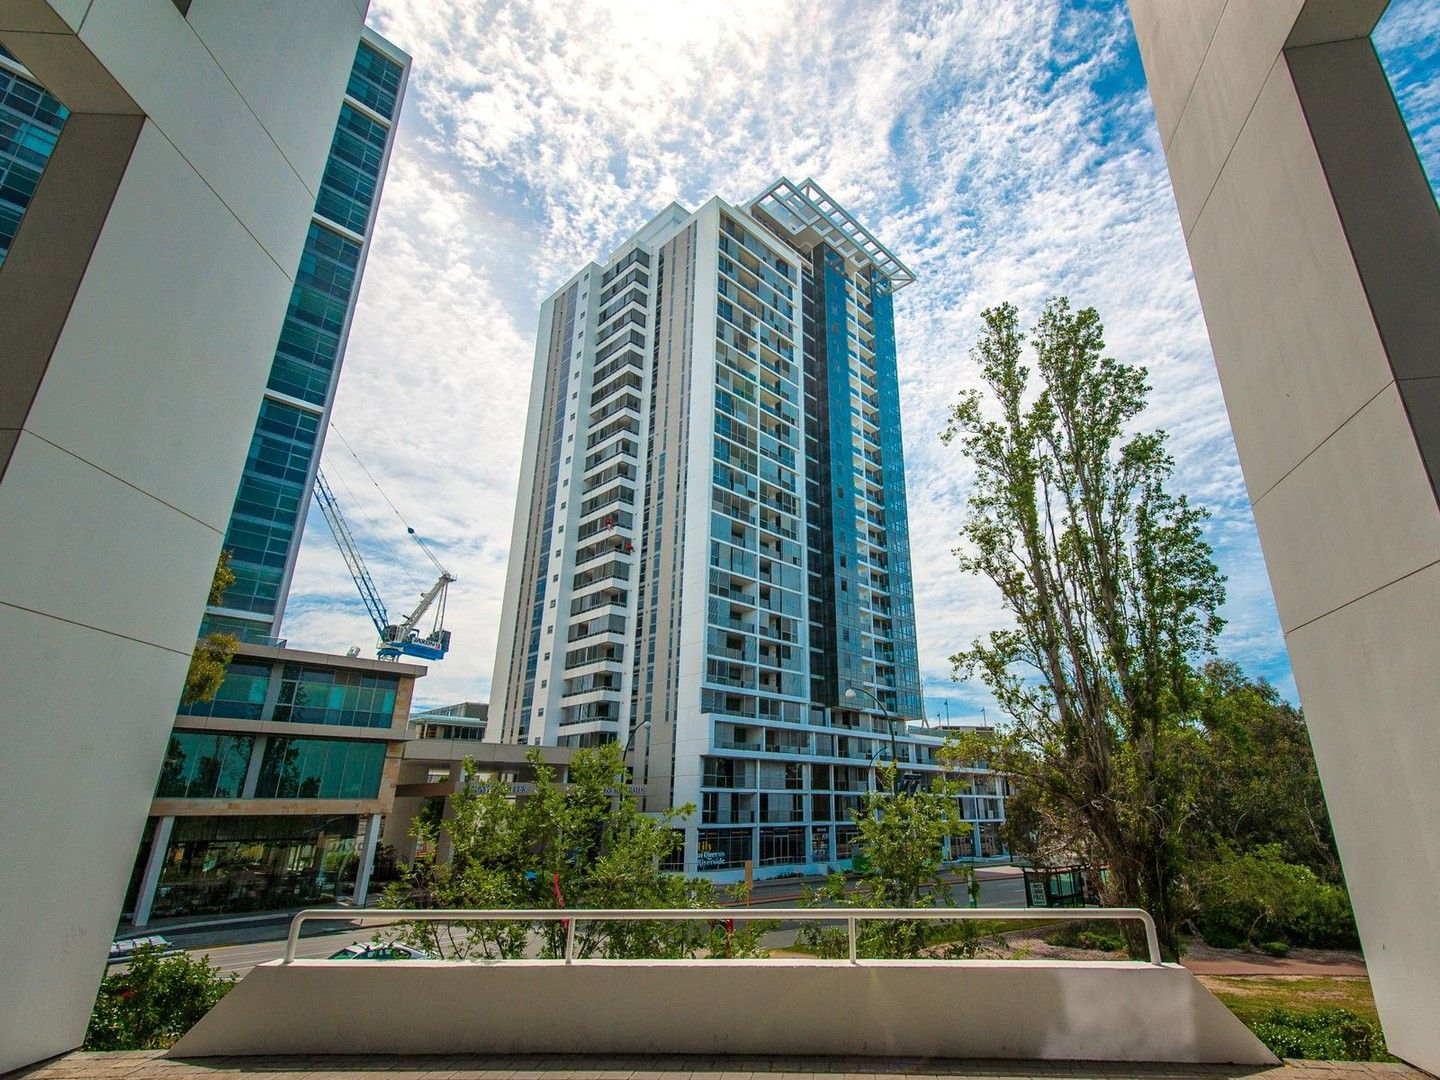 1 bedrooms Apartment / Unit / Flat in 1112/8 Adelaide Terrace EAST PERTH WA, 6004